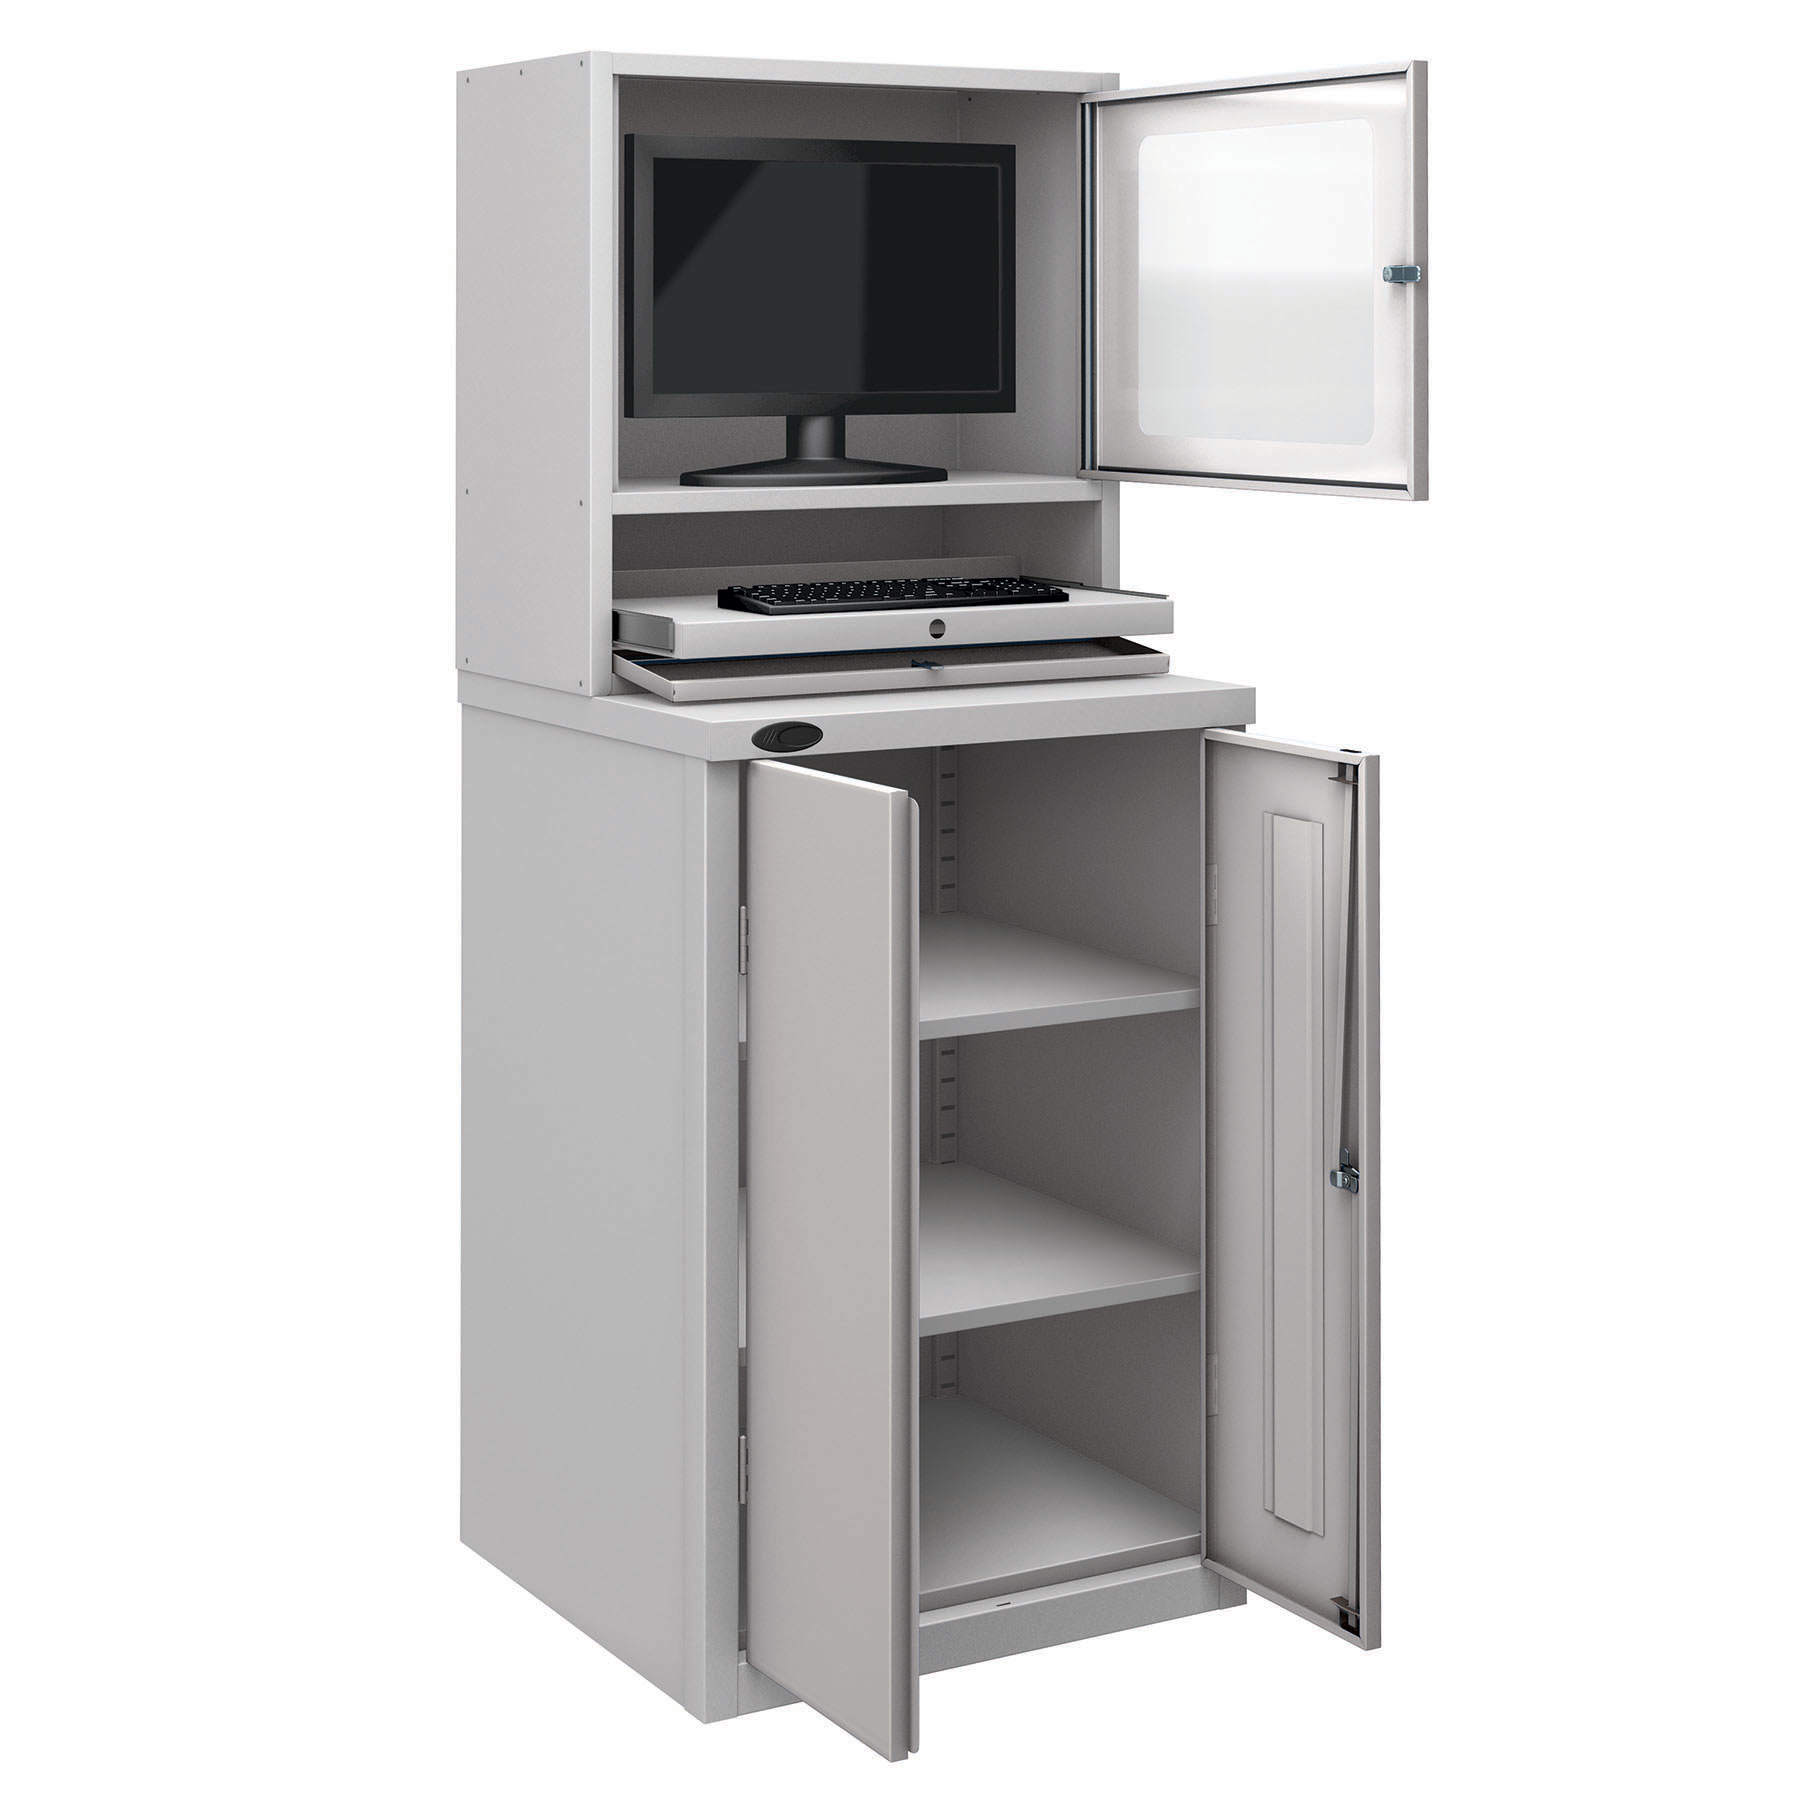 Probe workstation base monitor cupboard silver